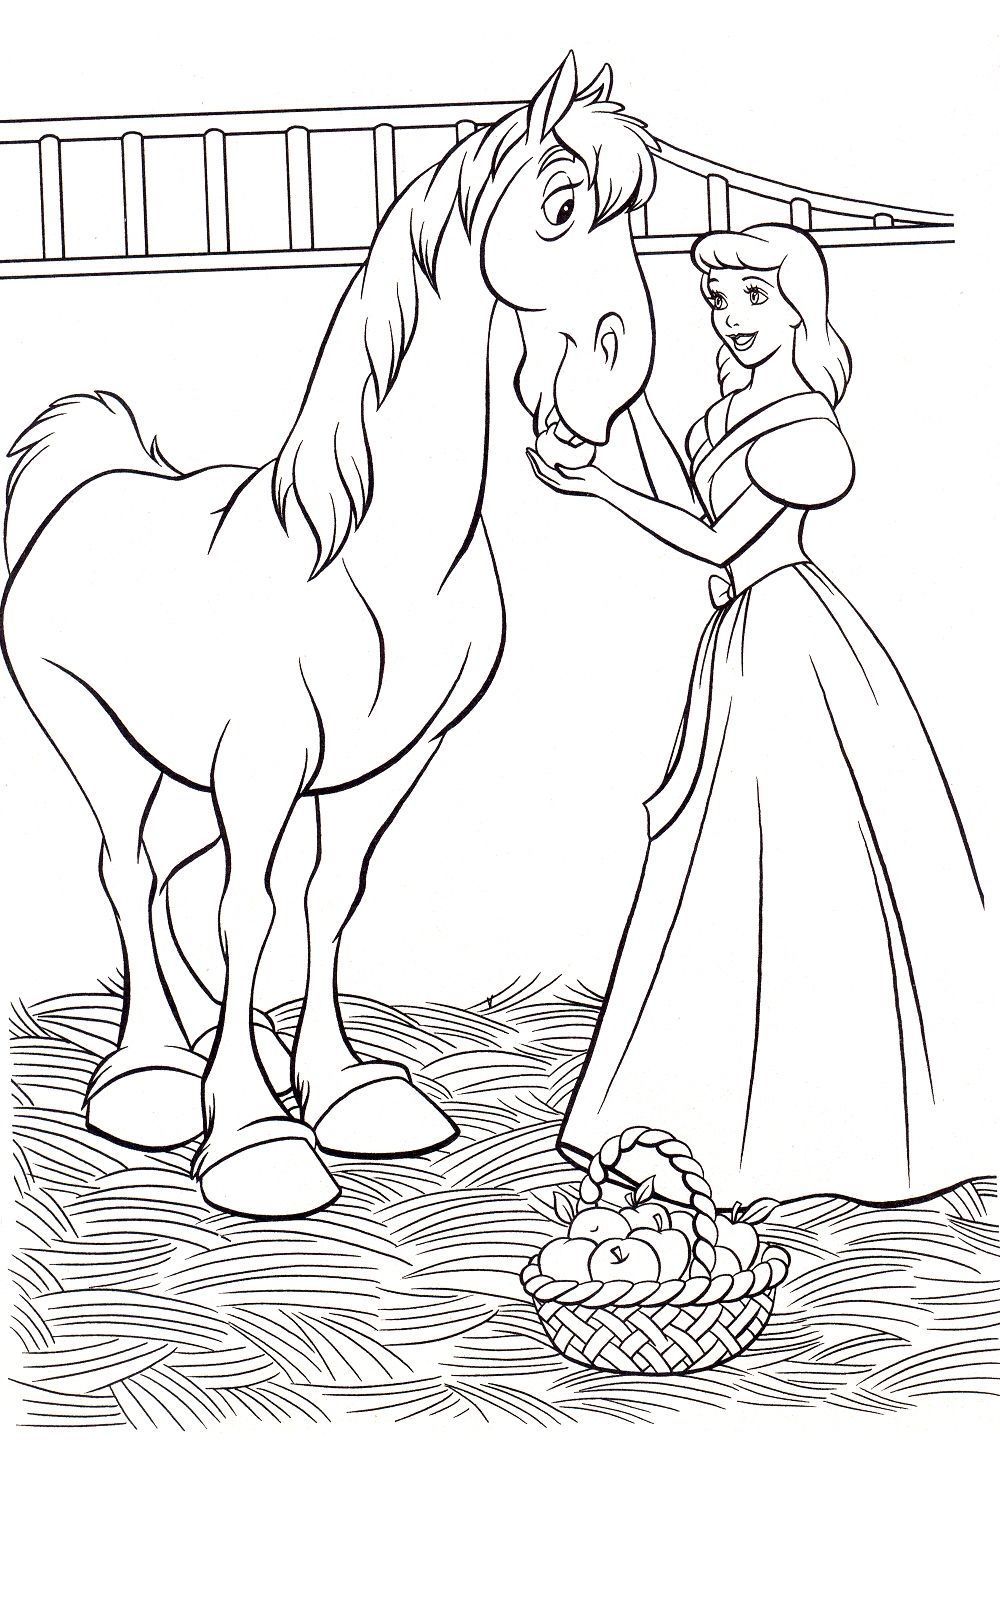 Cinderella Coloring Pages - Wowcom - Image Results